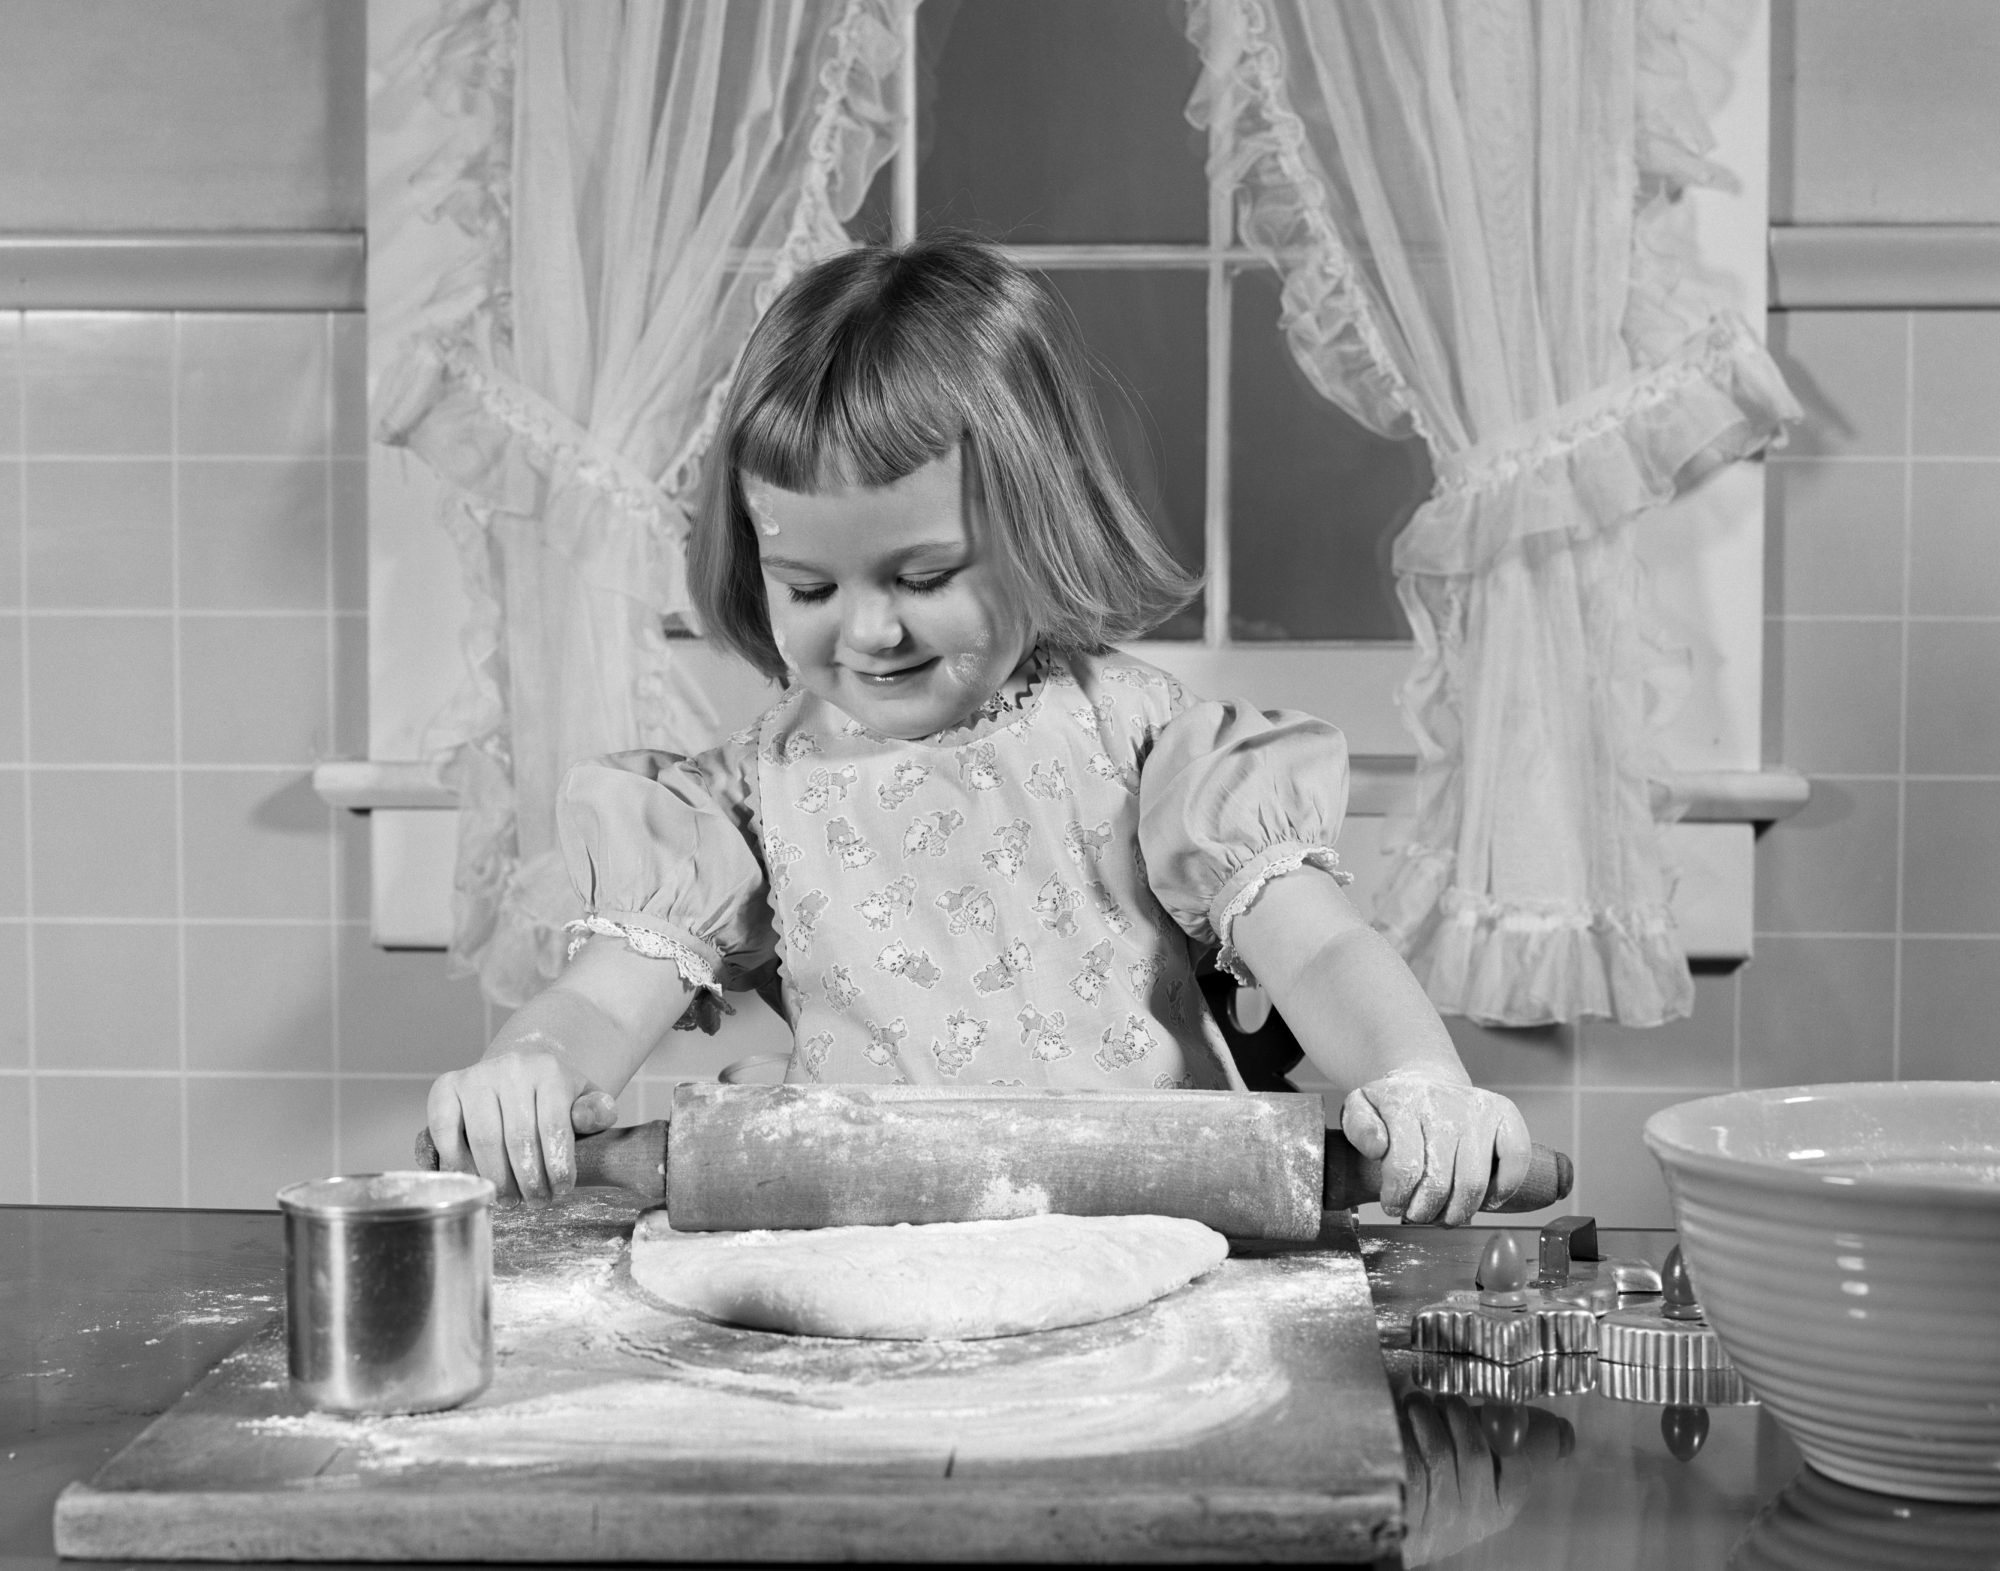 Young Girl Baking Rolling Out Dough